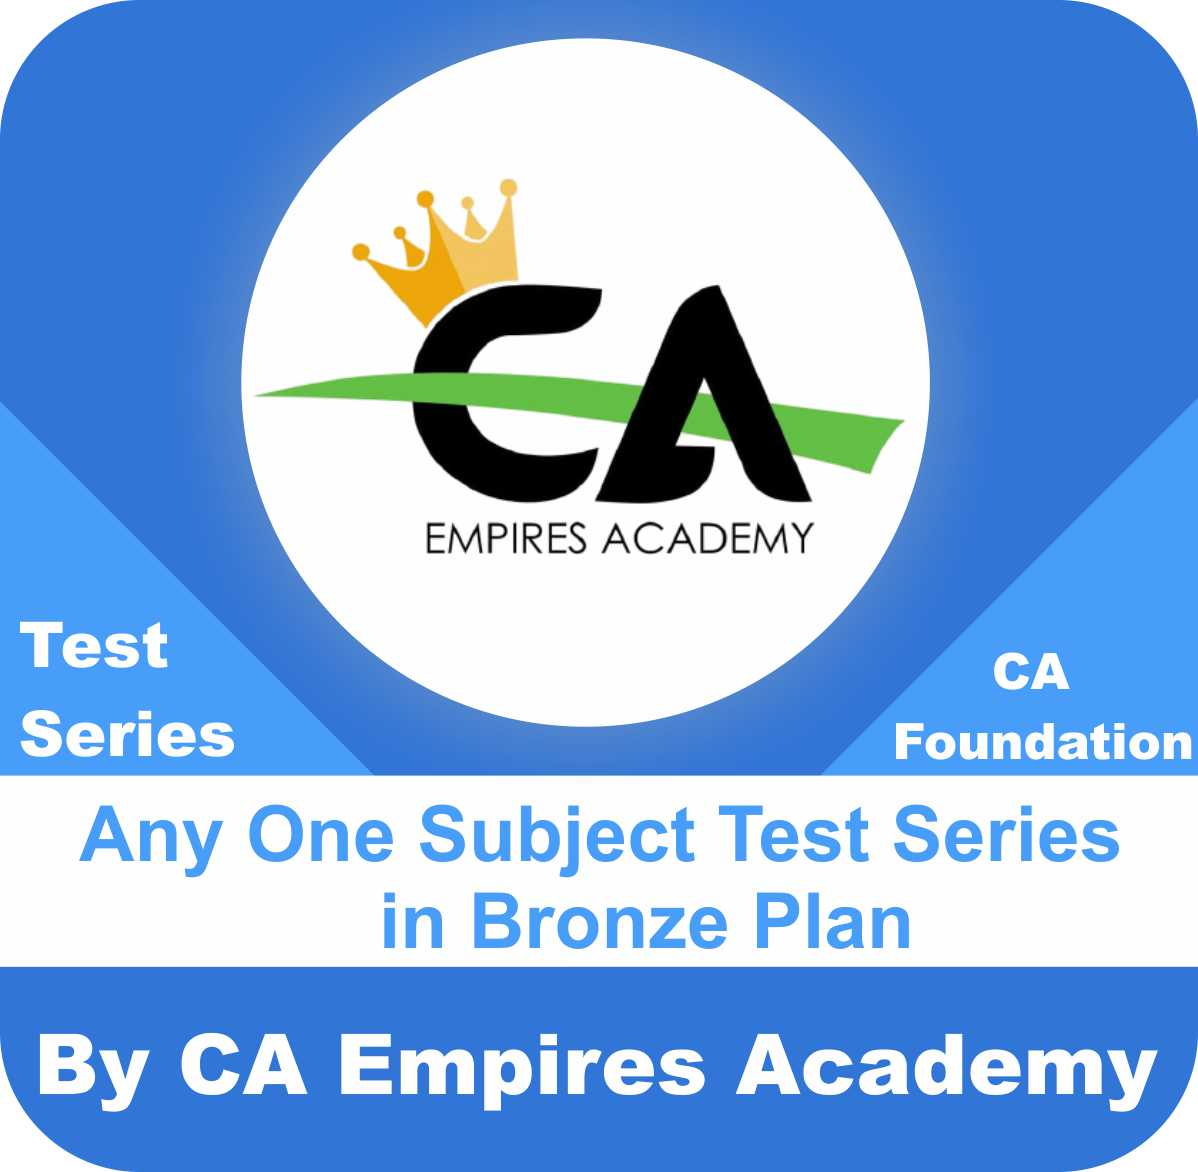 Any One Subject Test Series in Bronze Plan